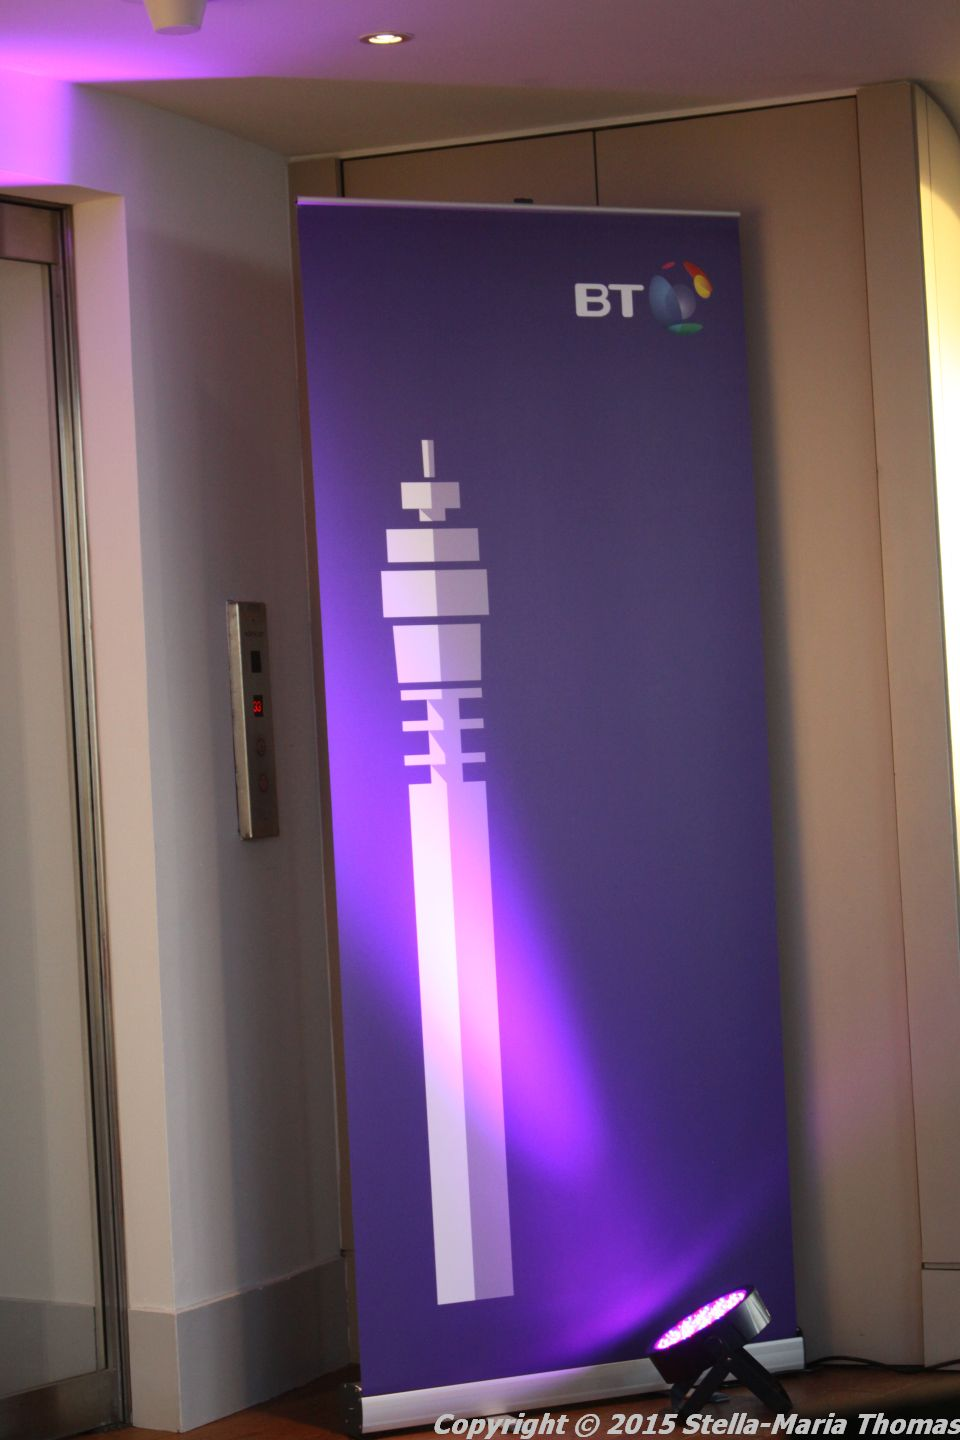 Food 2015 – BT Tower (Celebrating the BT Tower's 50th Birthday), London